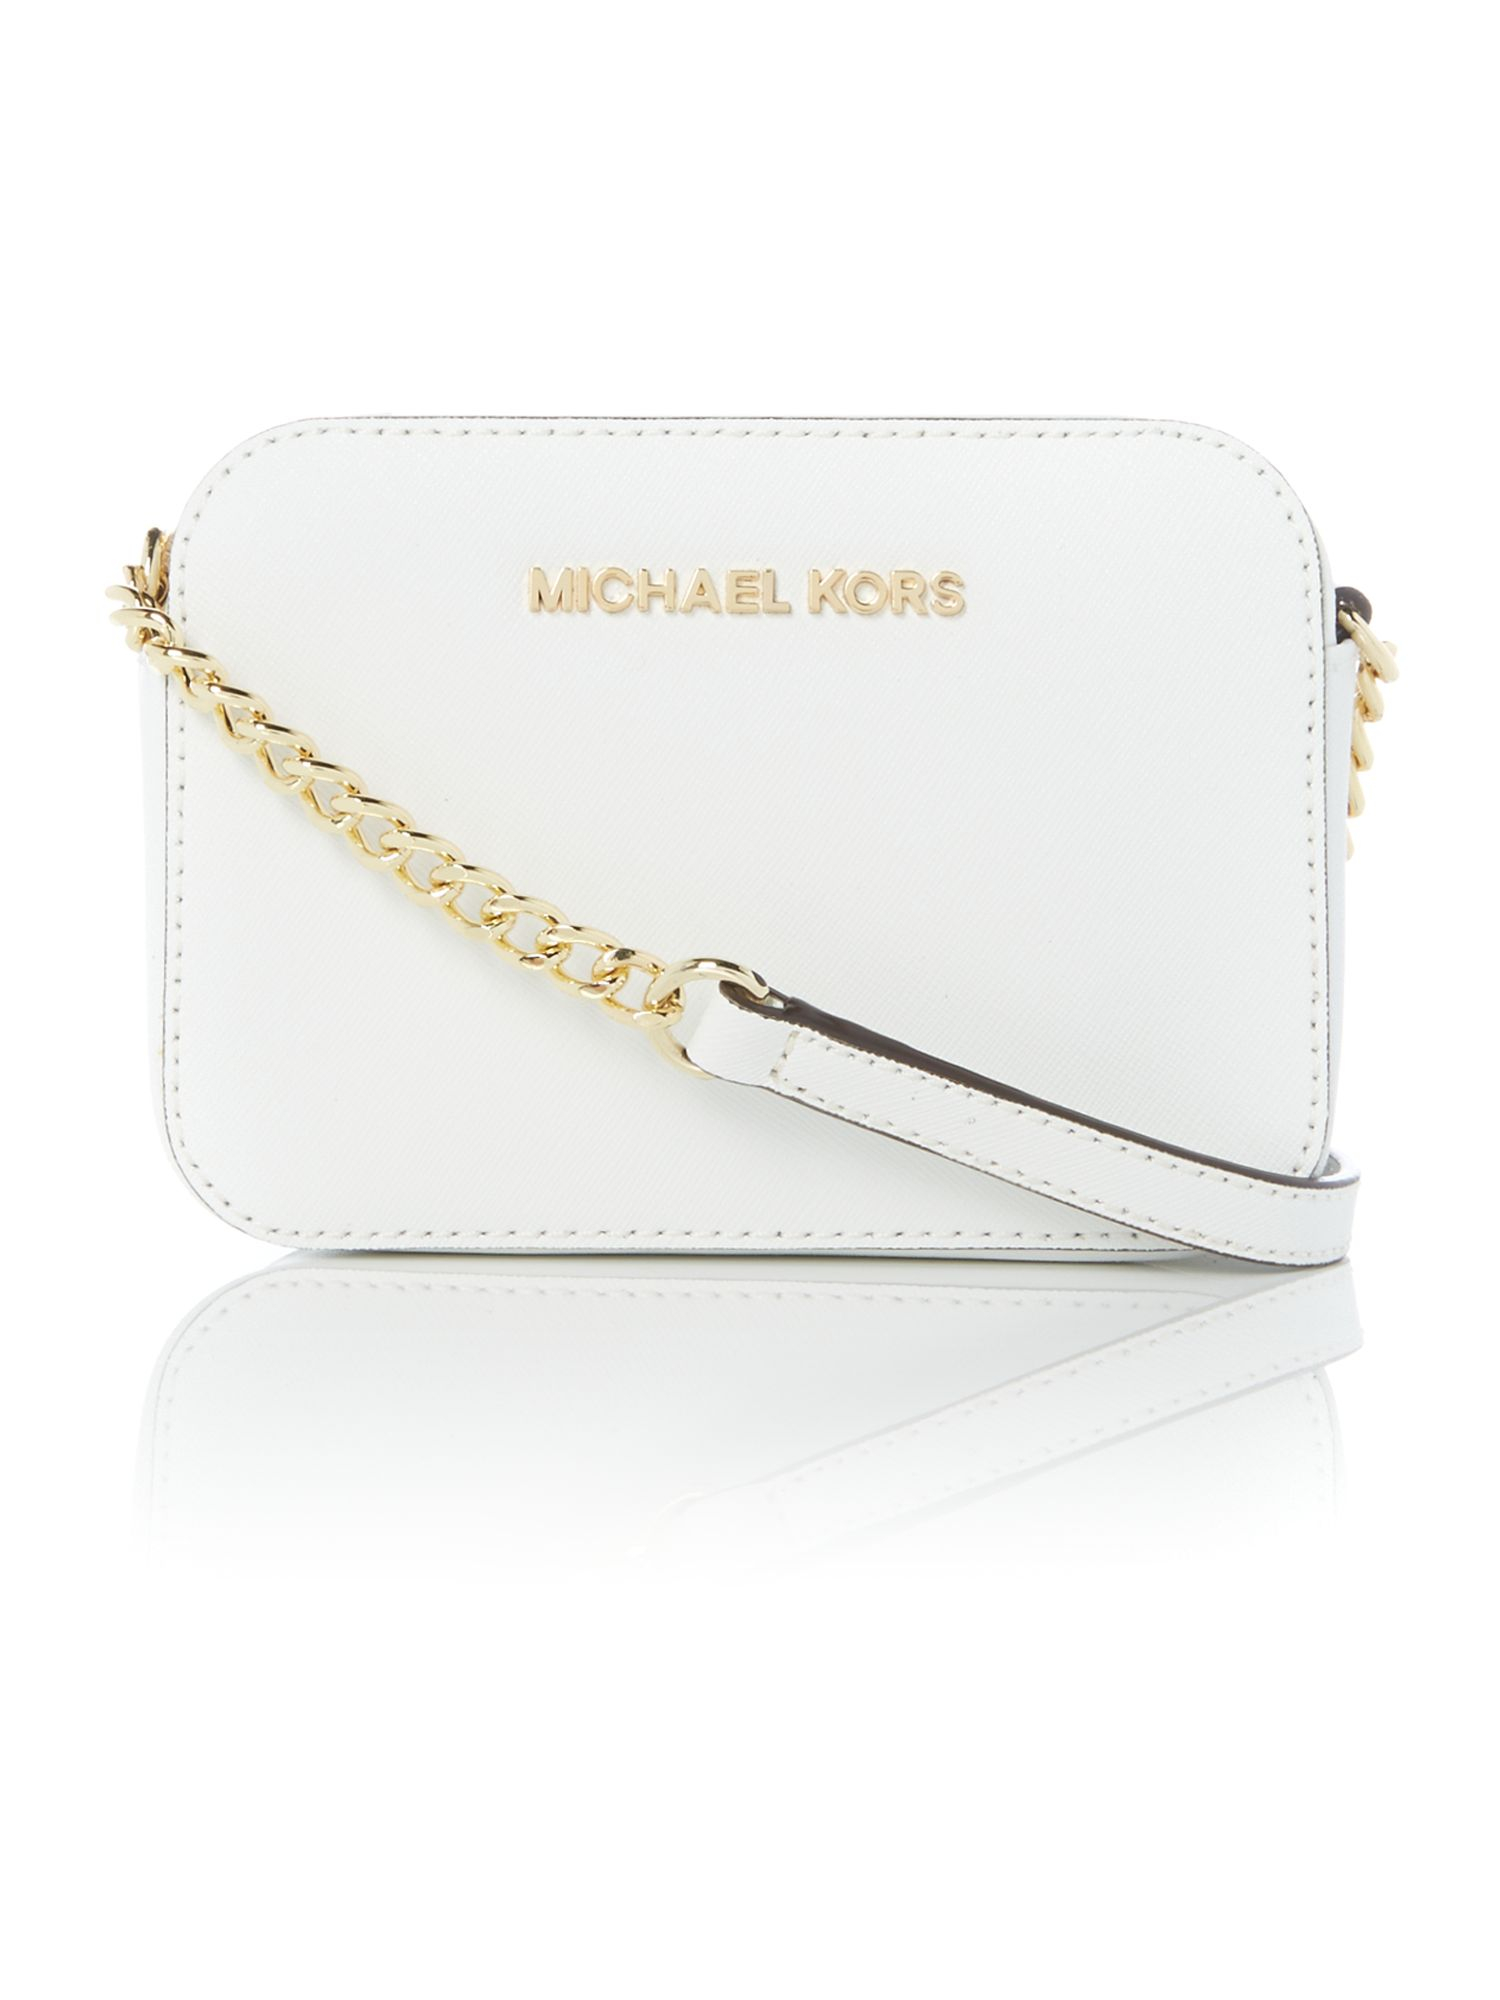 Michael kors Jetset Travel White Small Cross Body Bag in White | Lyst